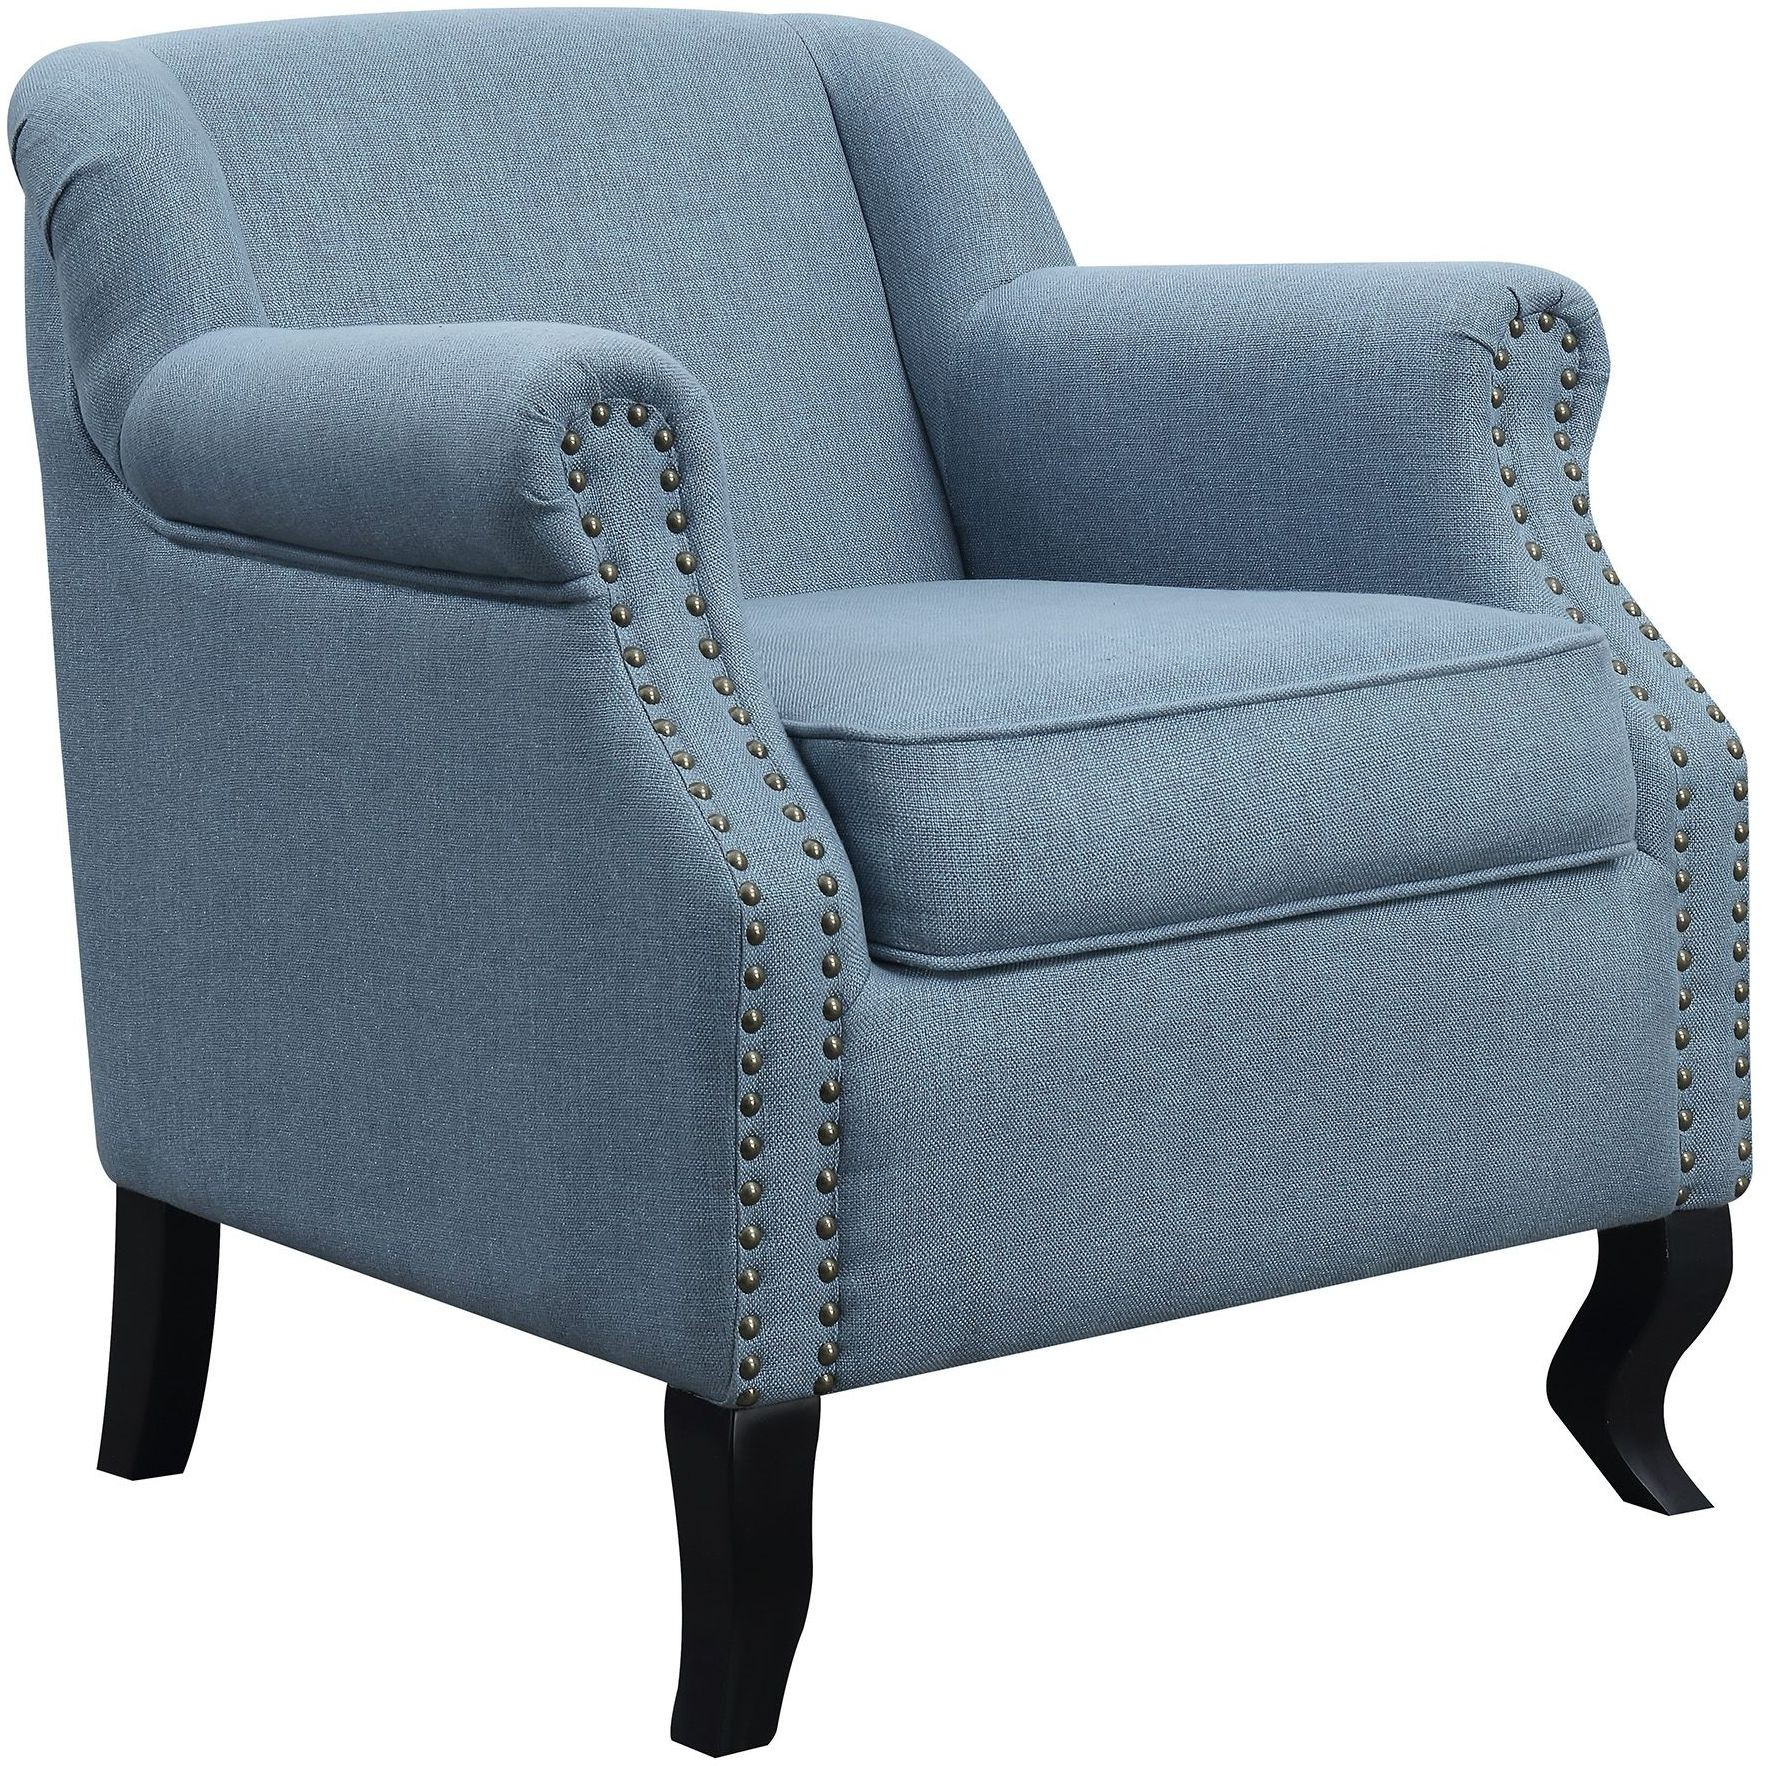 Accent Chair Blue Light Blue Accent Chair From Coaster Coleman Furniture